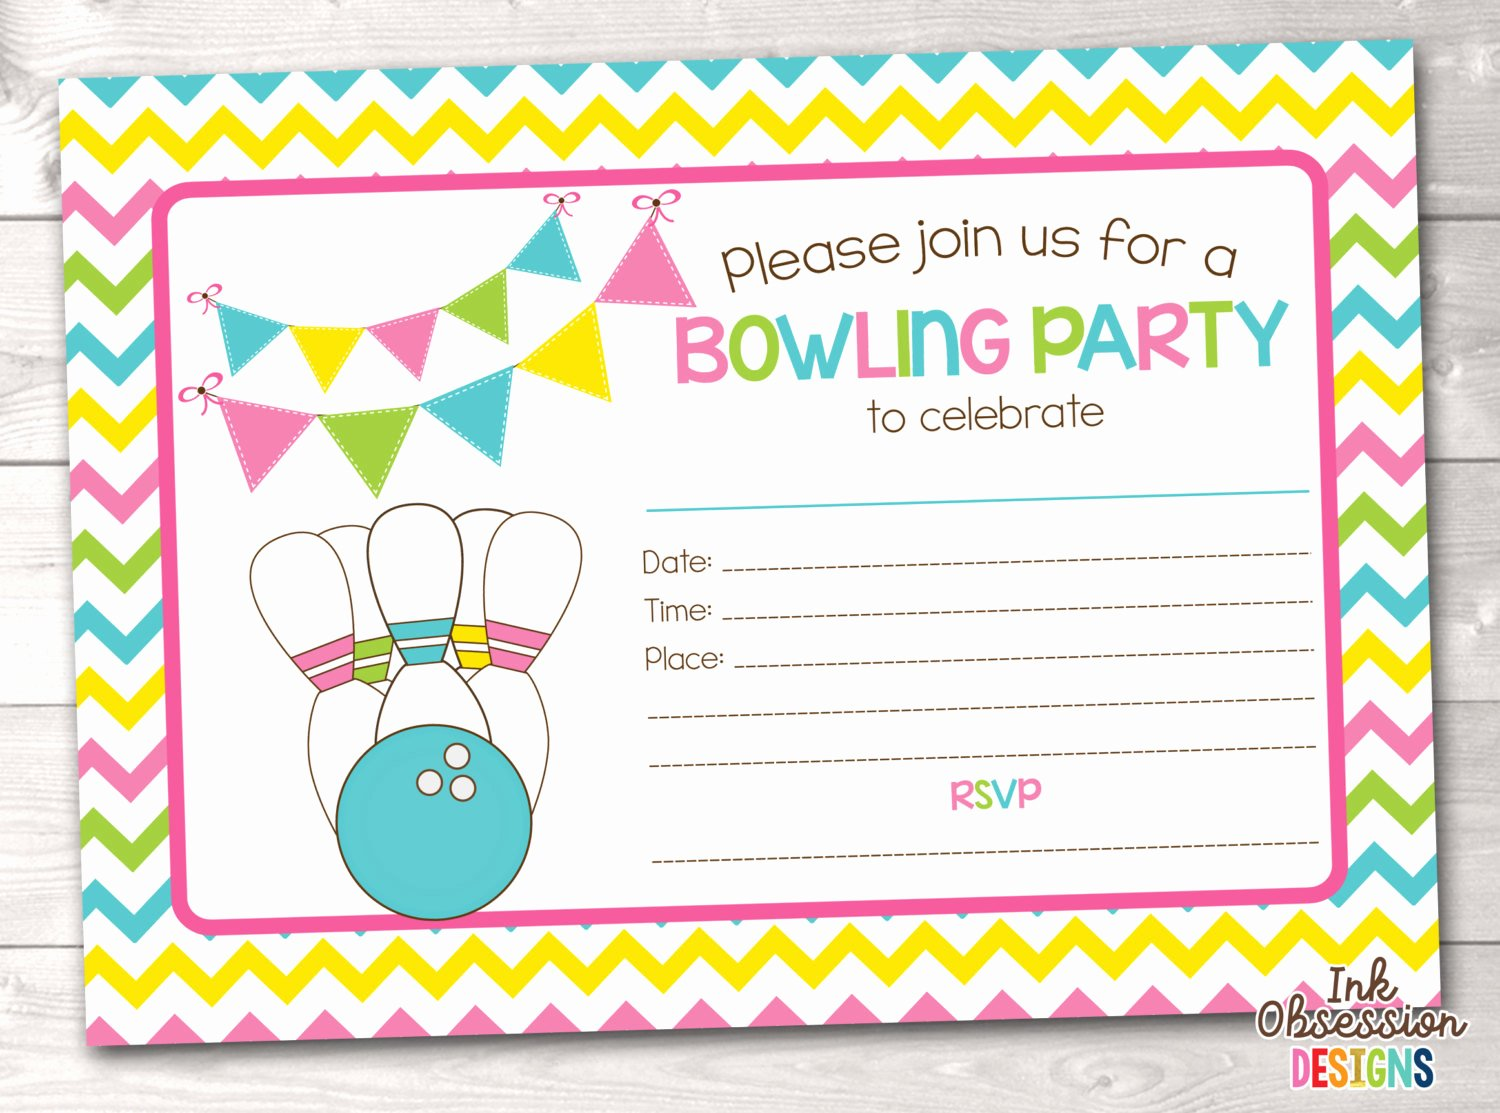 Free Bowling Invitations Template Awesome Printable Bowling Party Invitation Fill In the Blank Birthday